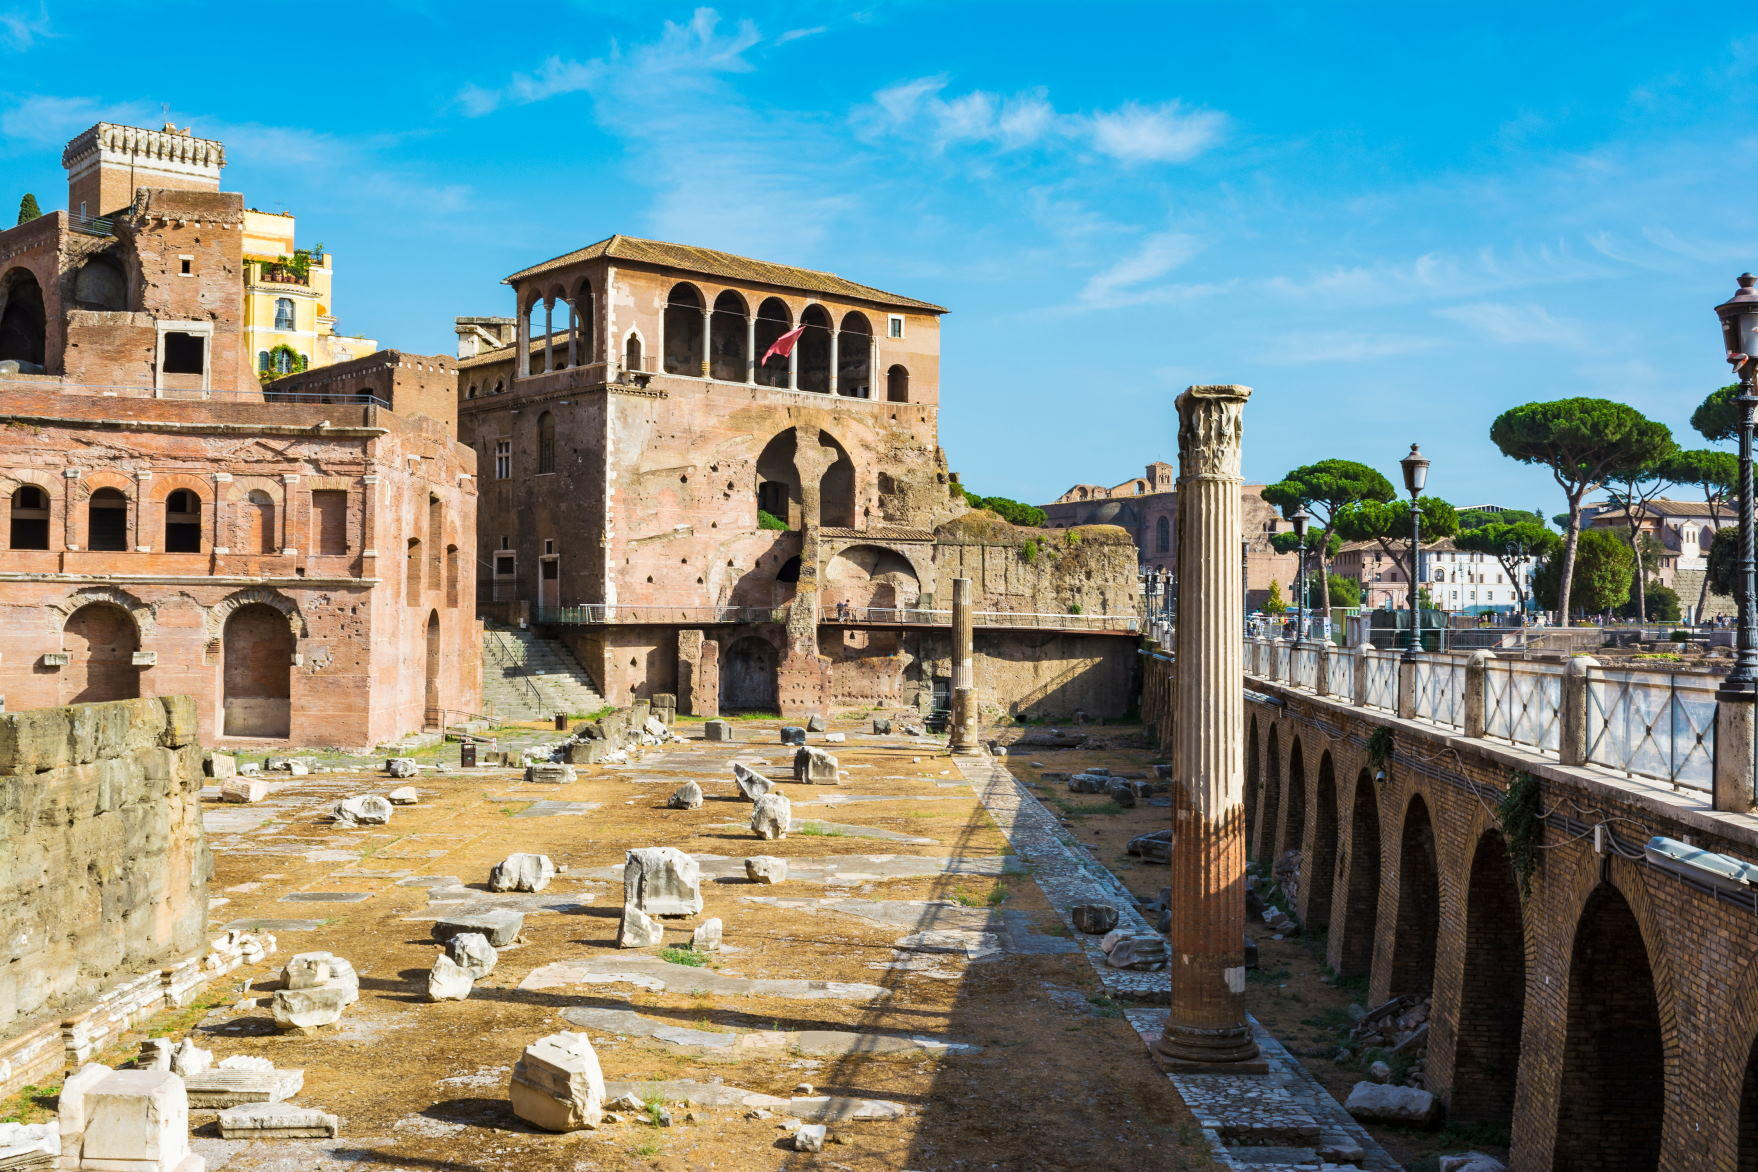 Ancient Trajan's market in Rome, Italy